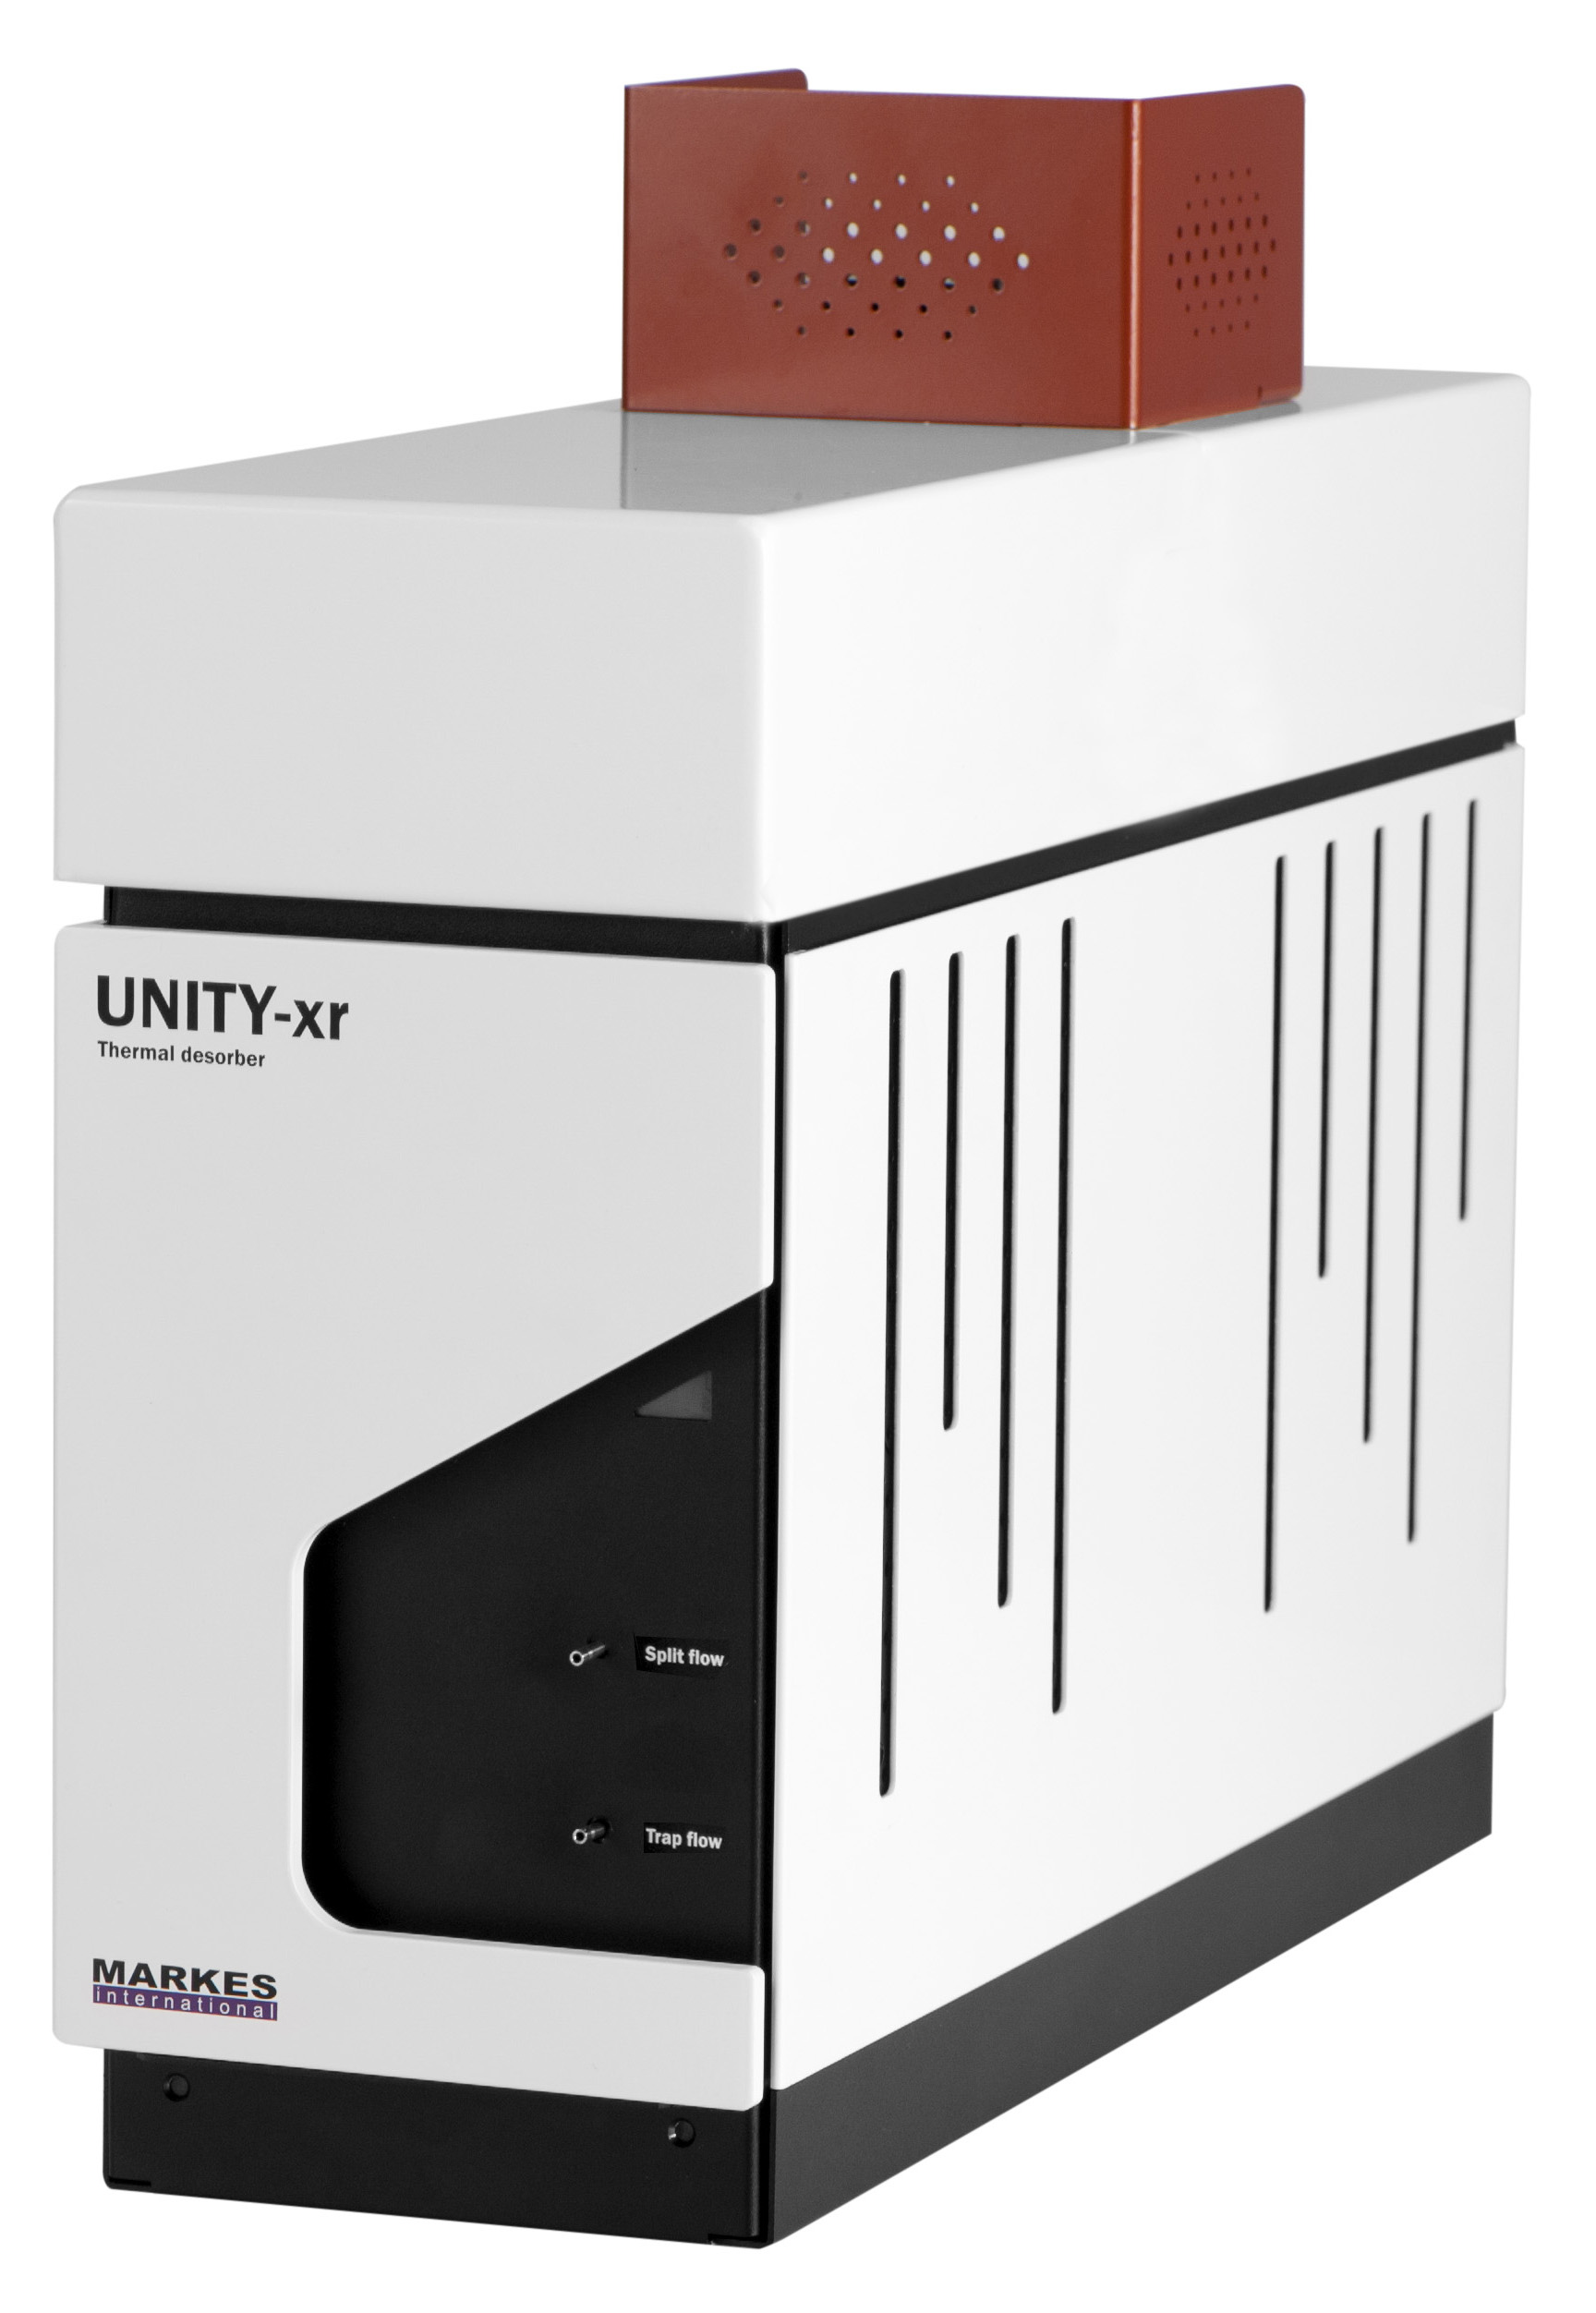 UNITY Xr From Right